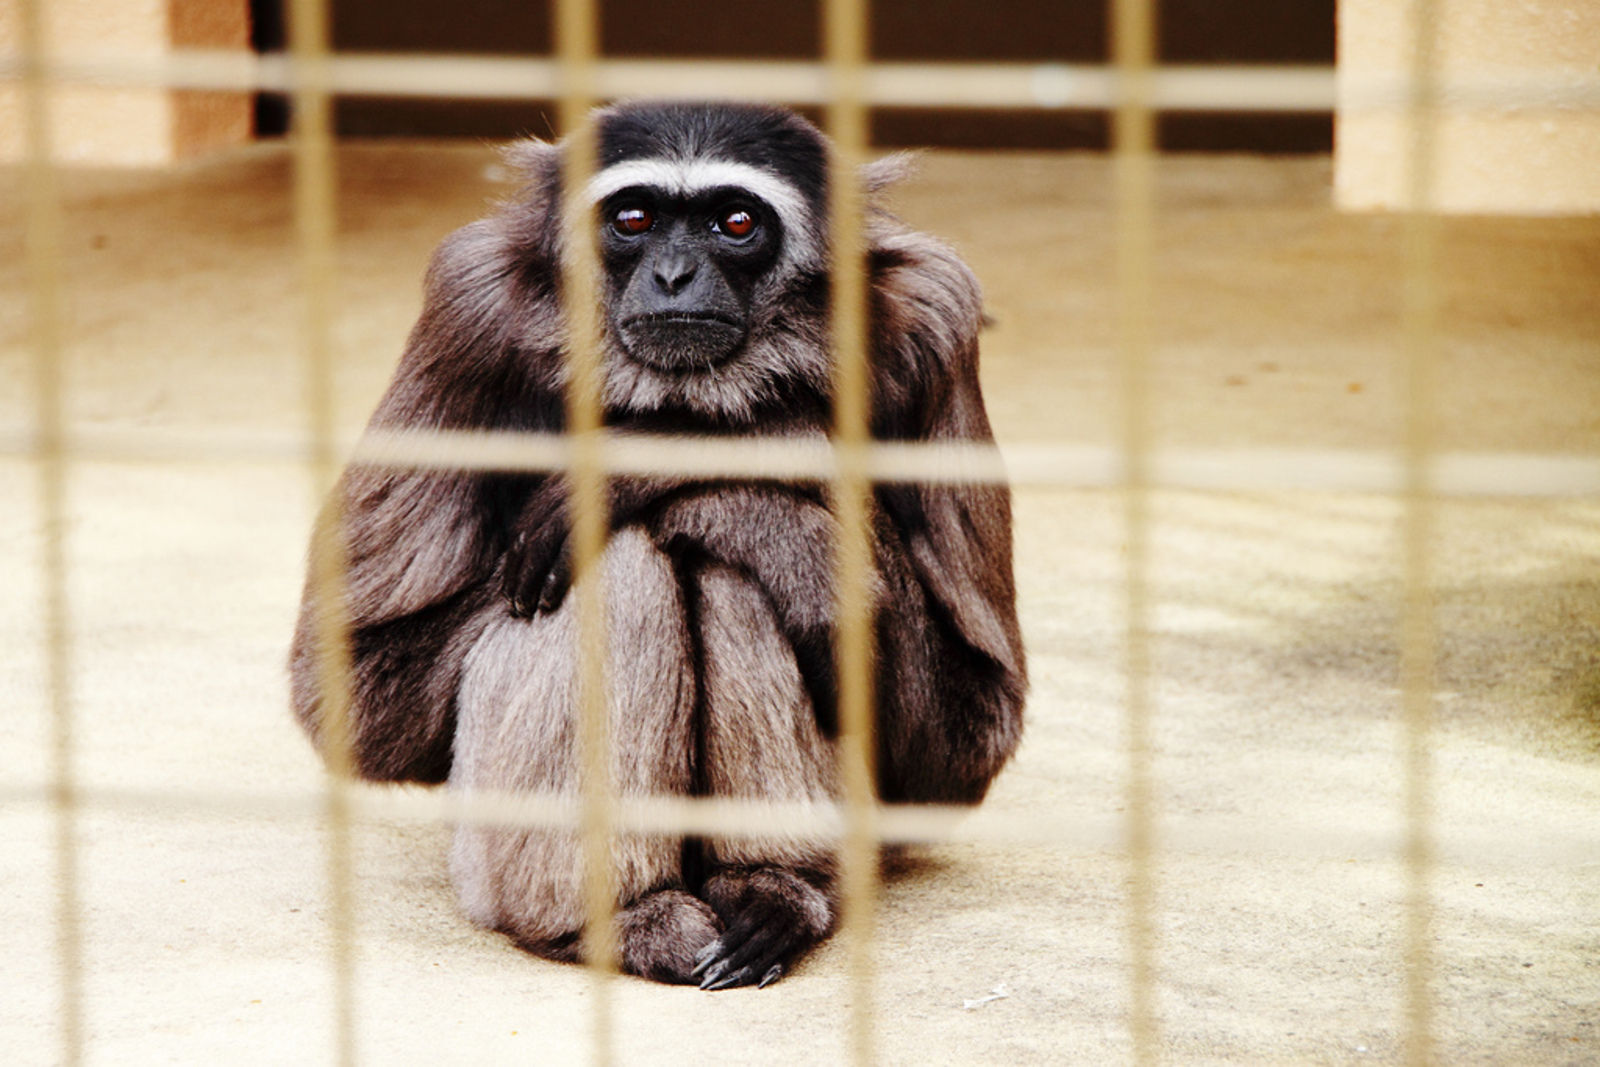 The Top 5 Misleading Claims Zoos Make